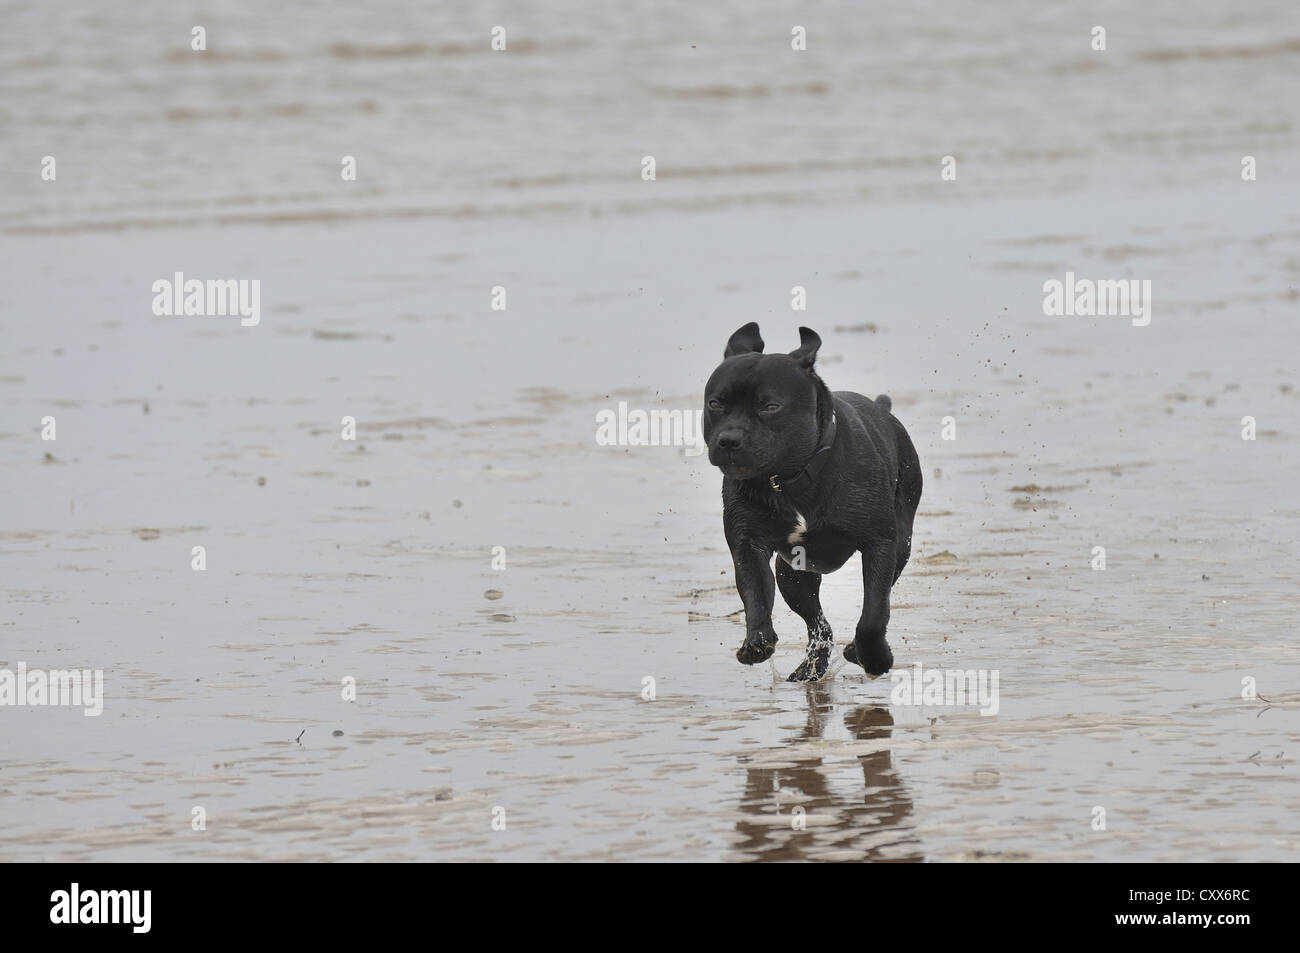 Staffordshire Bull Terrier running on wet beach - Stock Image